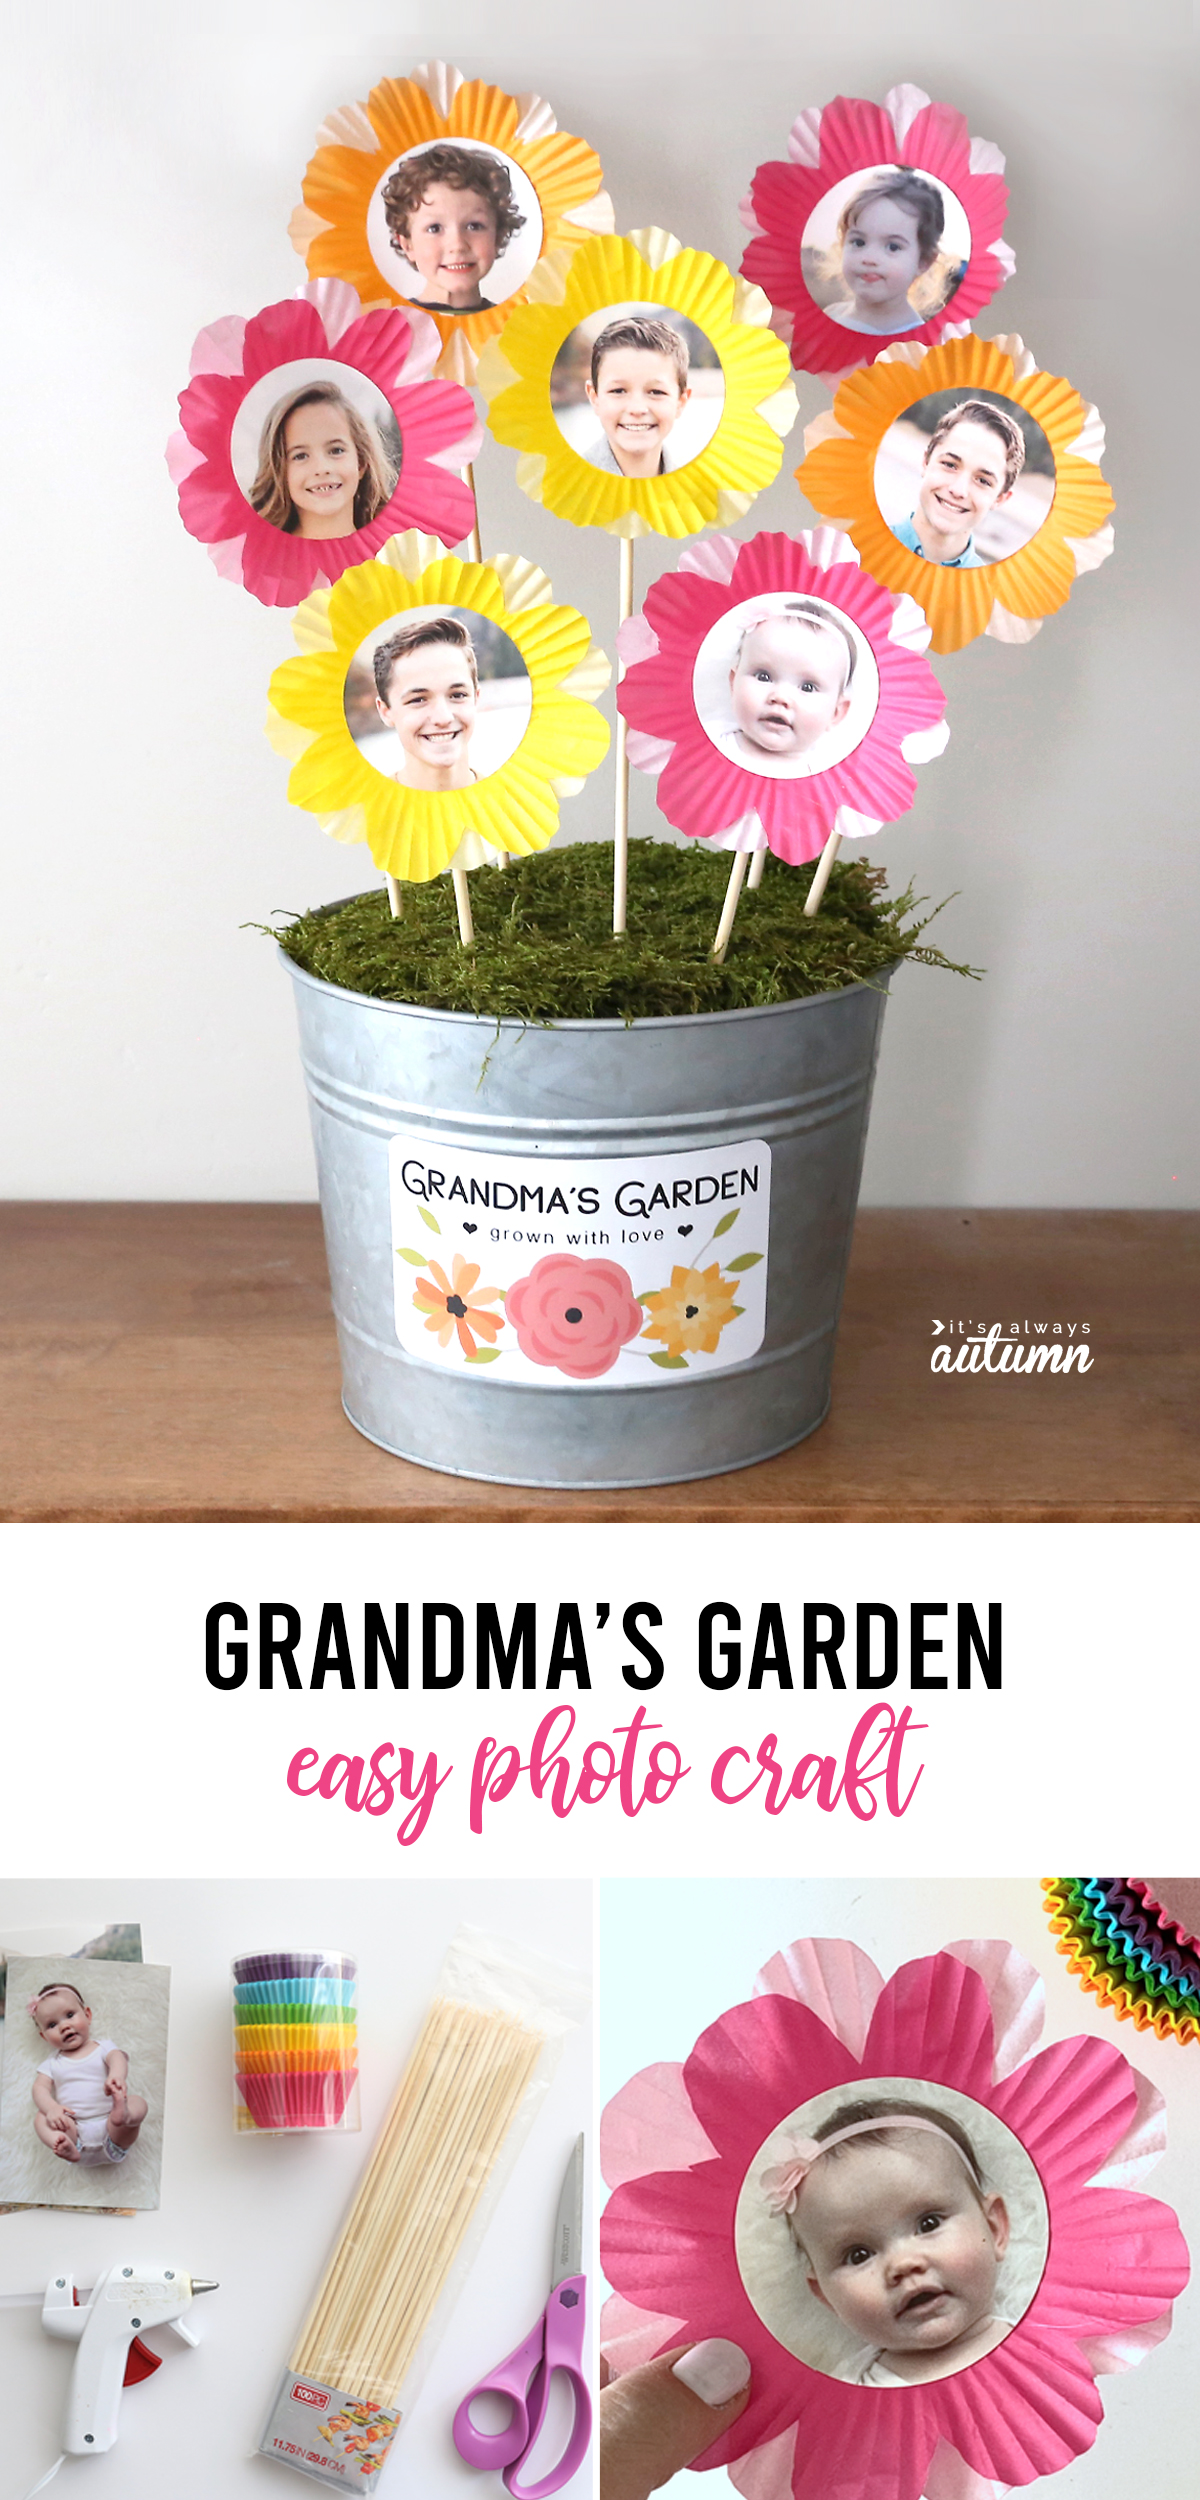 Flowers made from photos and cupcake liners in a metal pot with label: Grandma's Garden